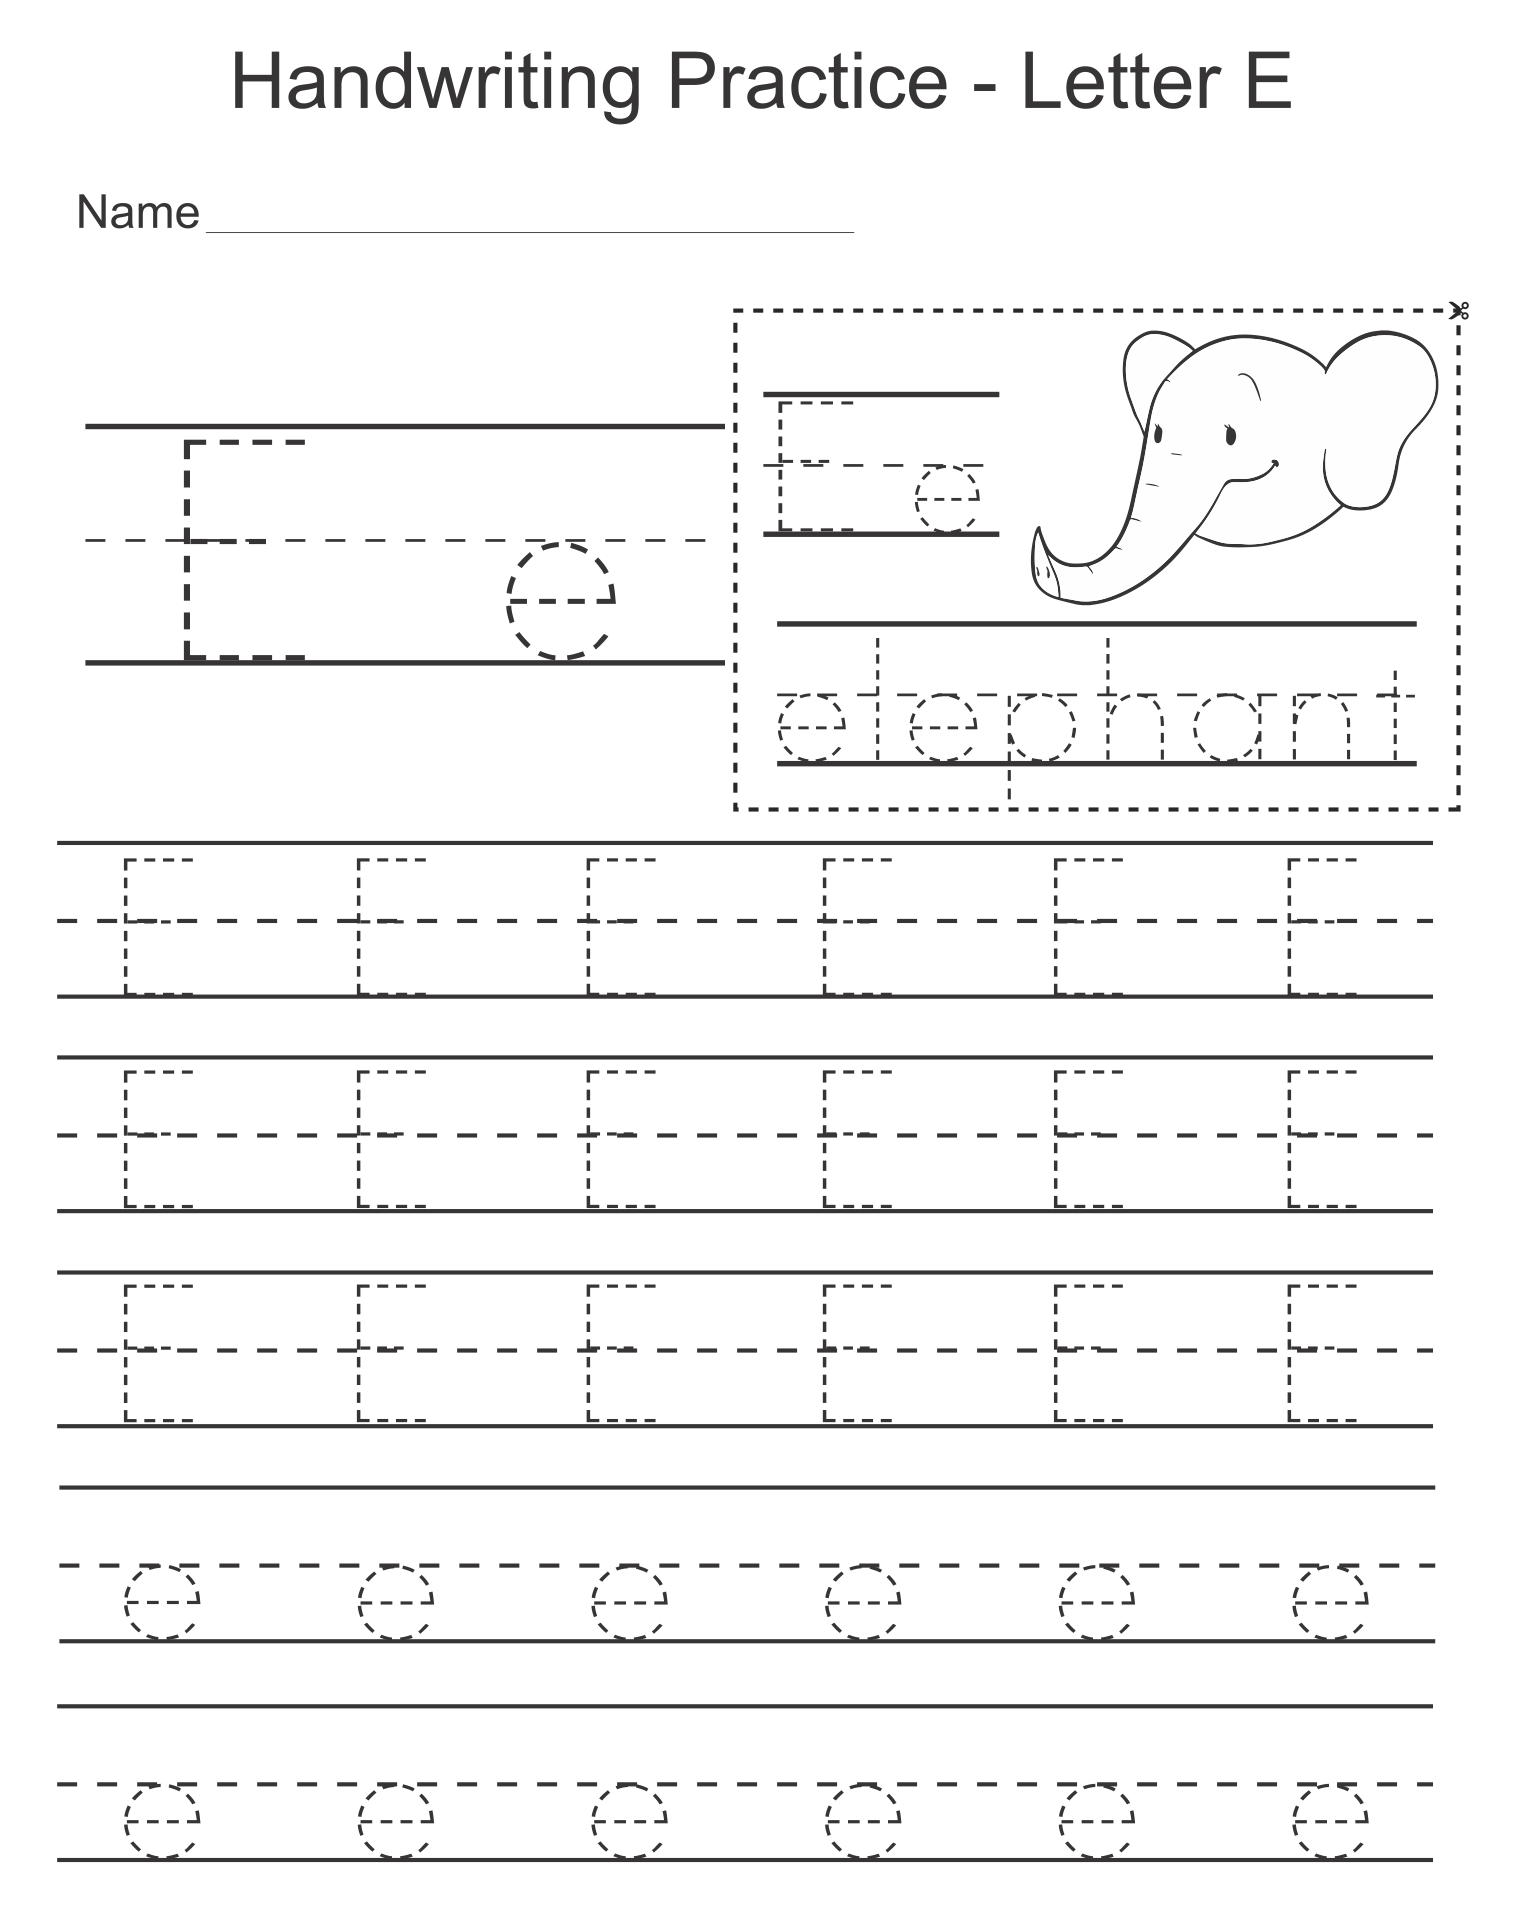 9 Images of Letter E Worksheets Free Printable